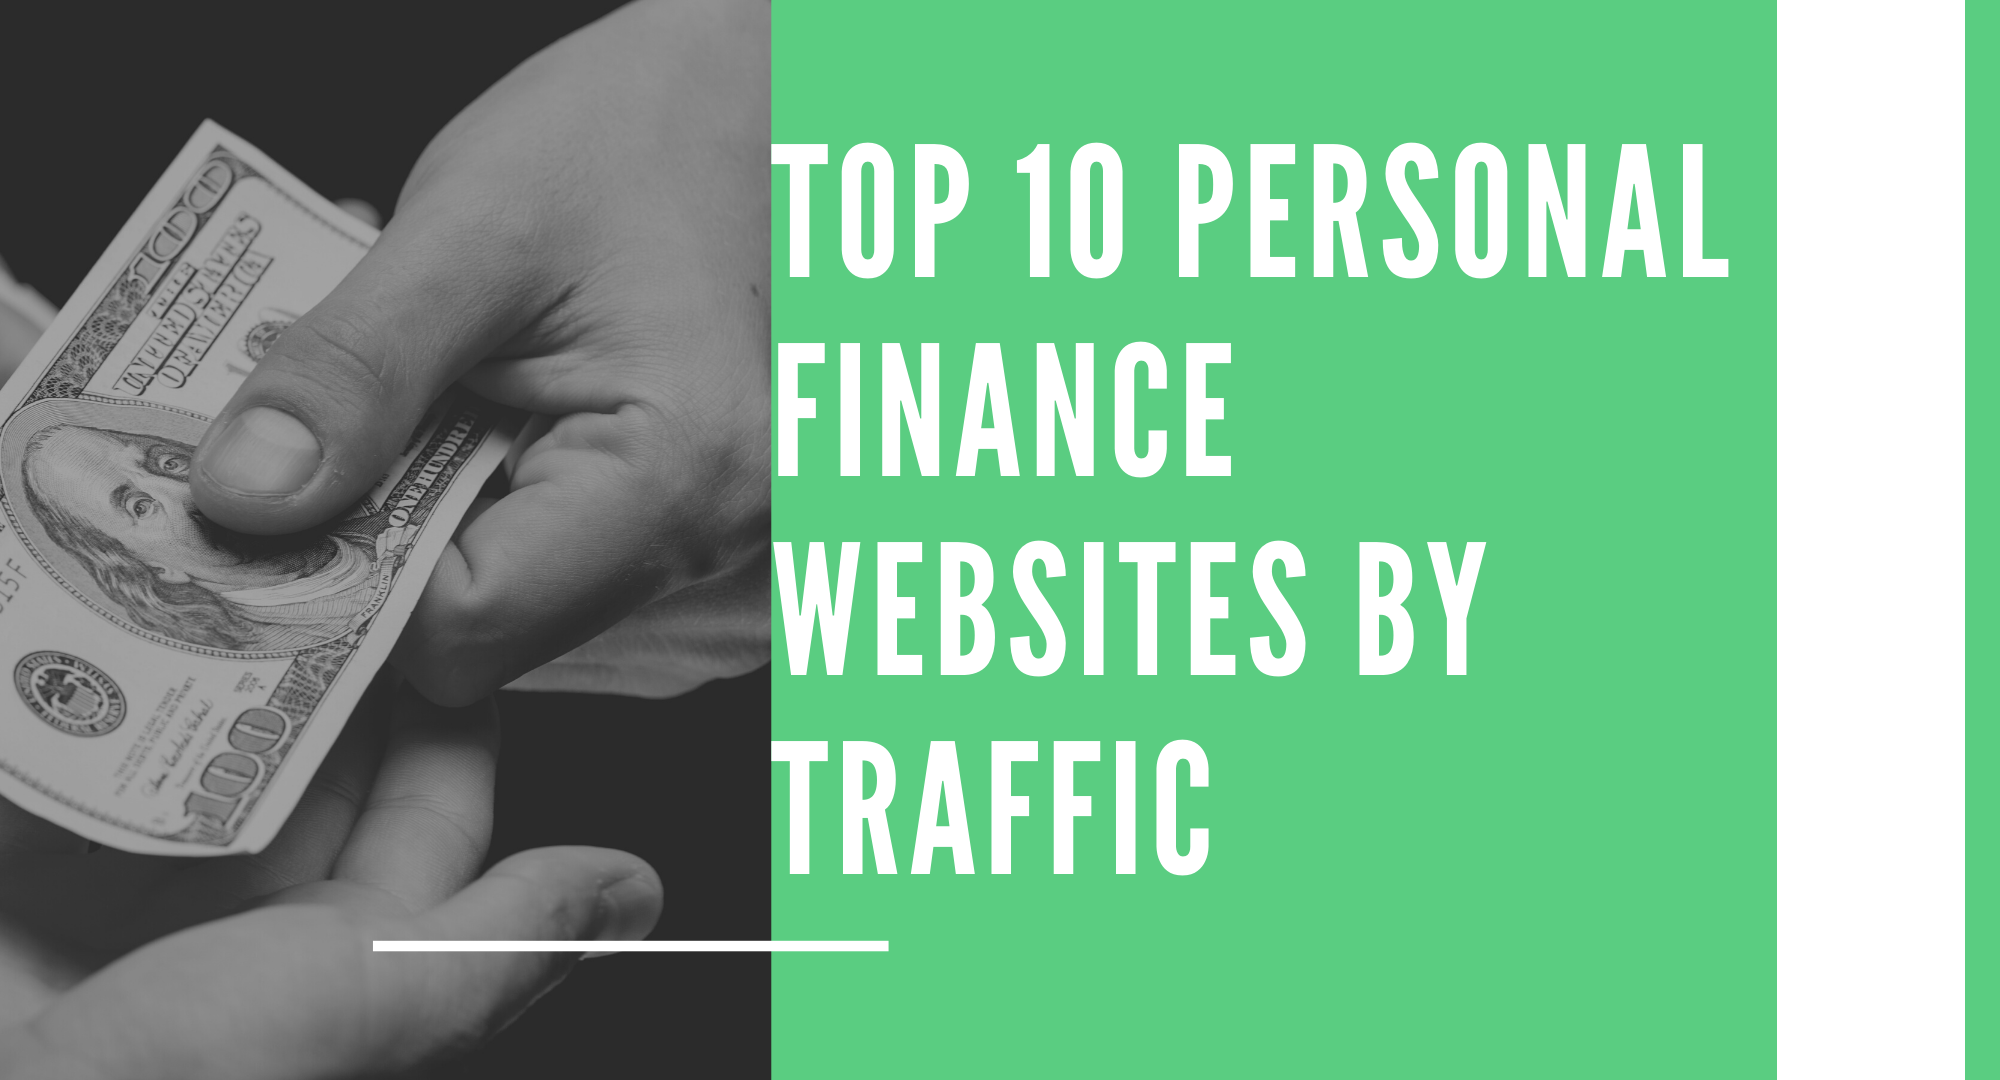 Top 10 Personal Finance Websites by Traffic